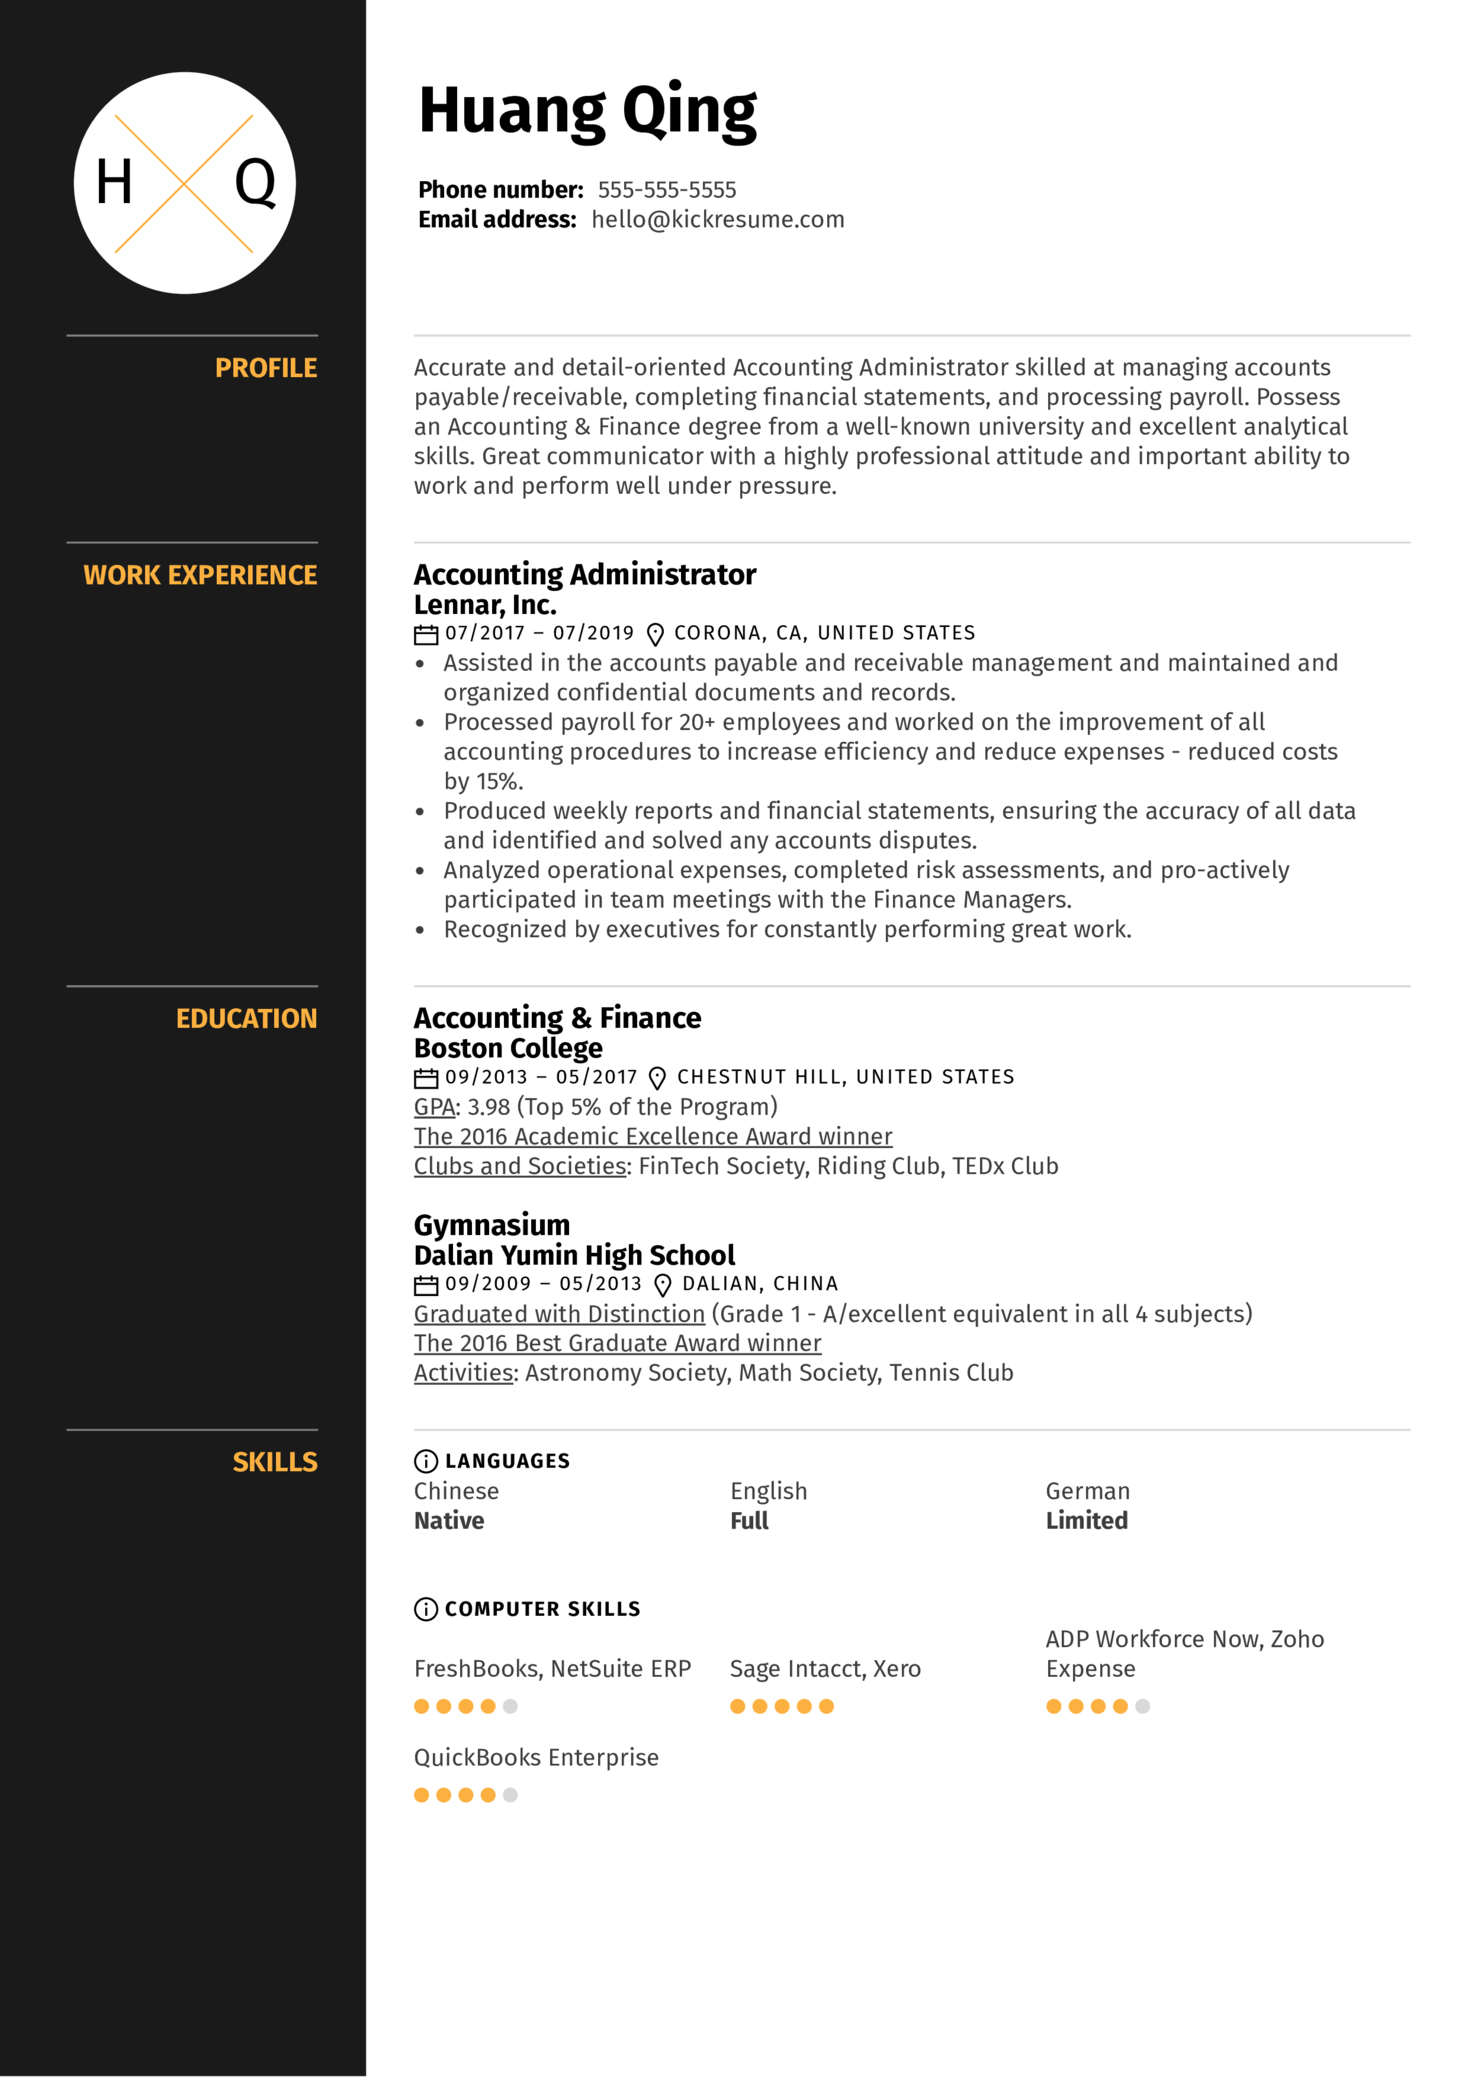 Accounting Administrator Resume Sample (parte 1)